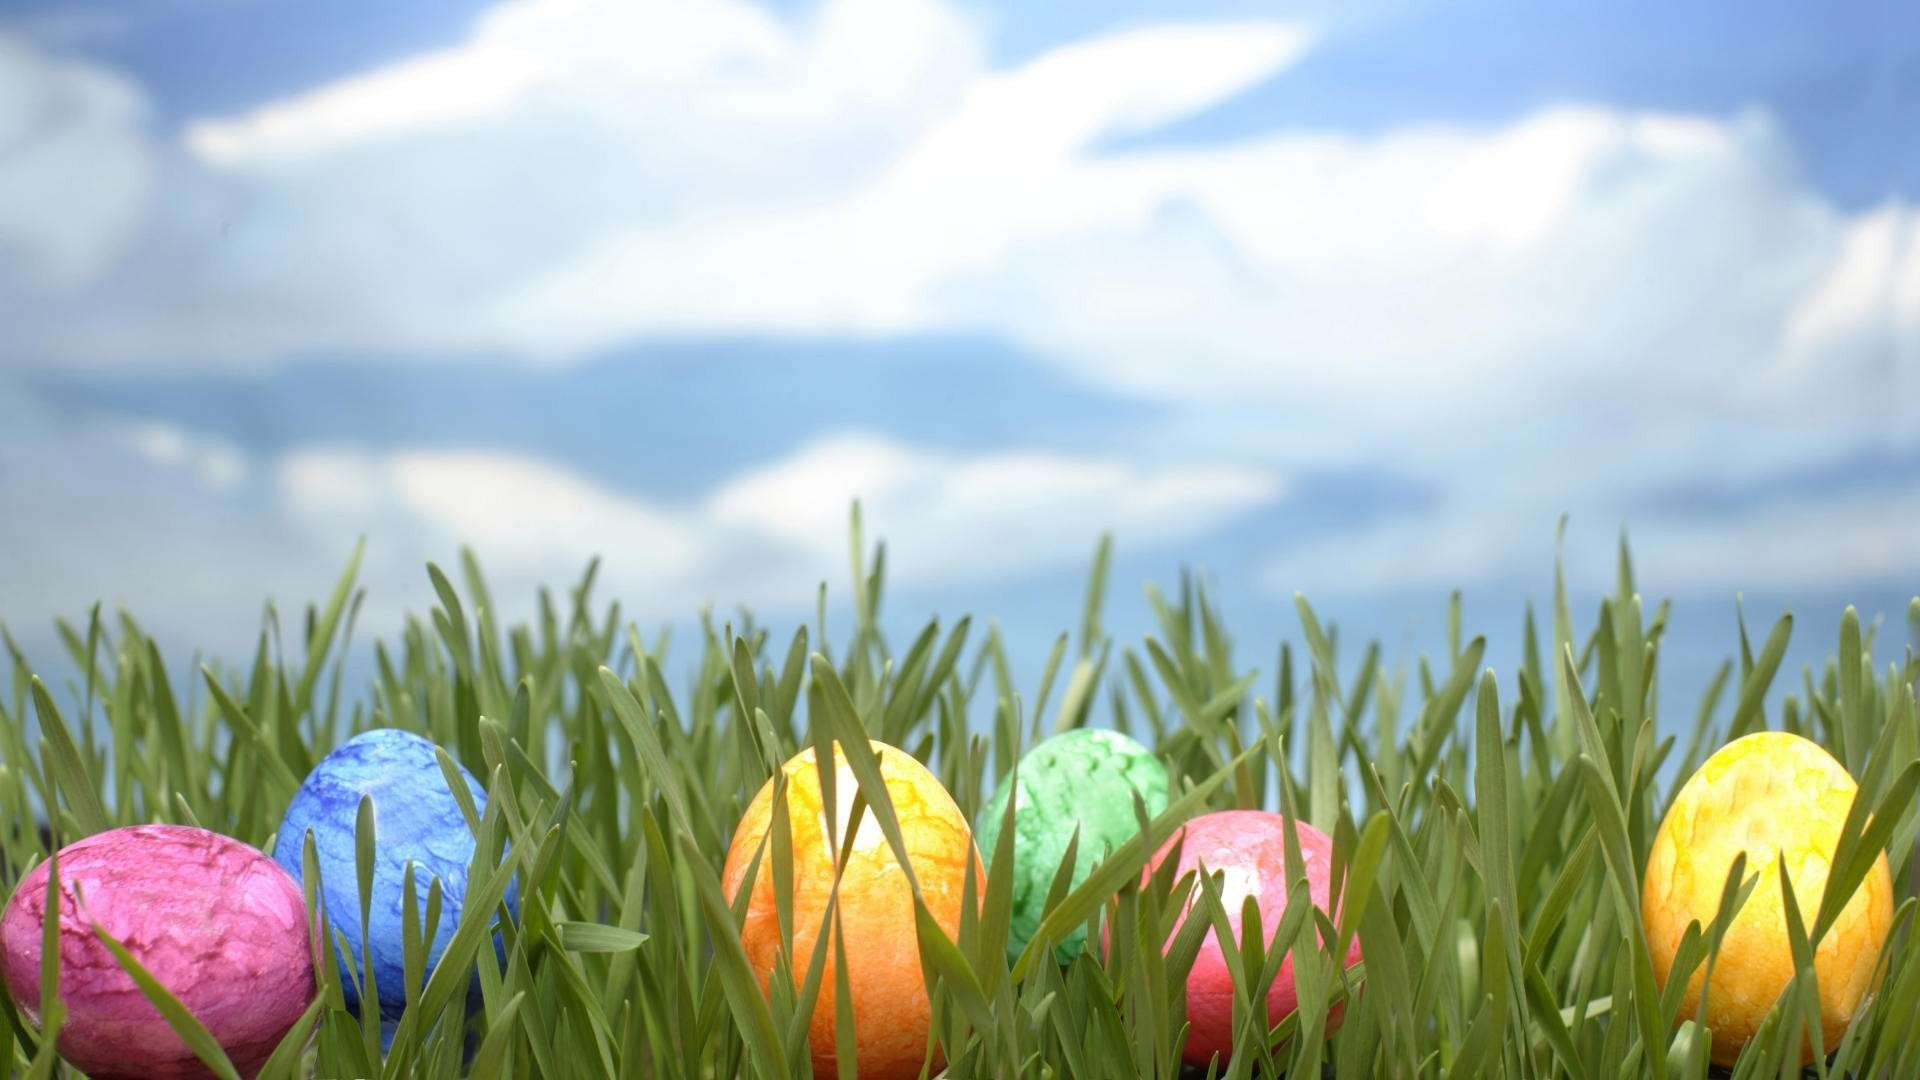 Easter Egg Background 1 Download Free Amazing HD Backgrounds For